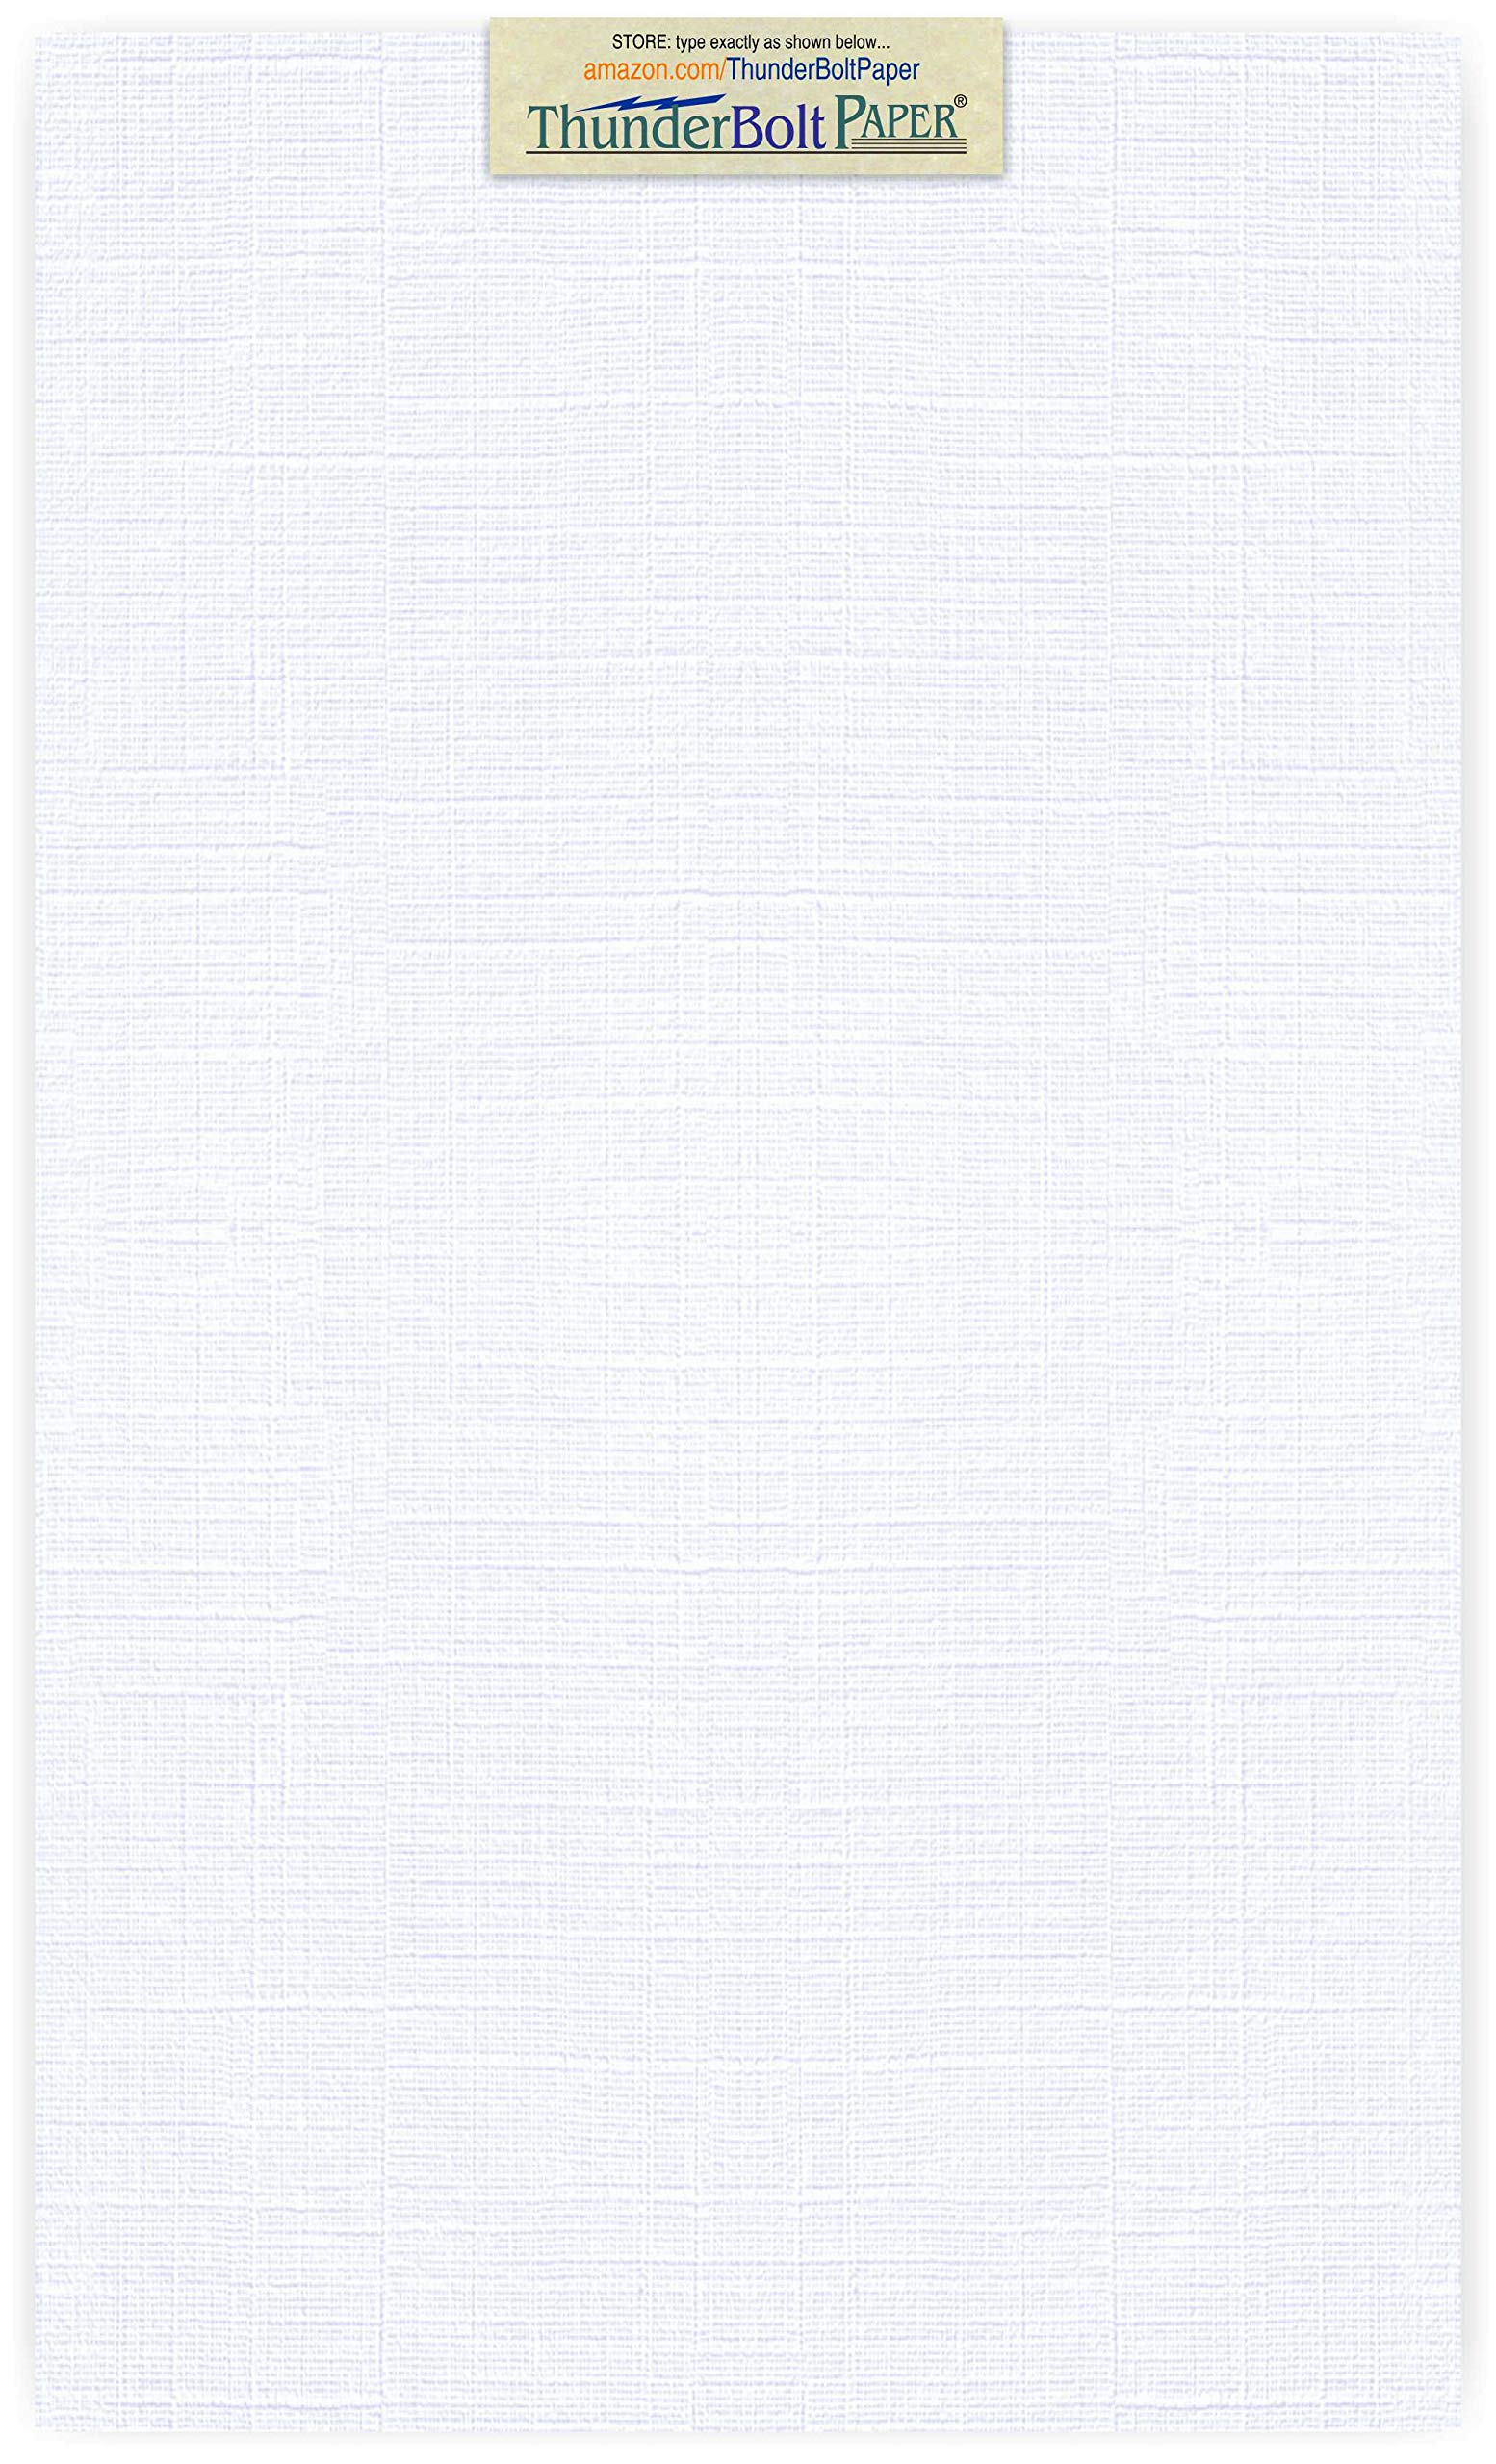 100 Bright White Linen 80# Cover Paper Sheets - 8.5'' X 14'' (8.5X14 Inches) Legal|Menu Size - 80 lb/Pound Card Weight - Fine Linen Textured Finish Quality Cardstock